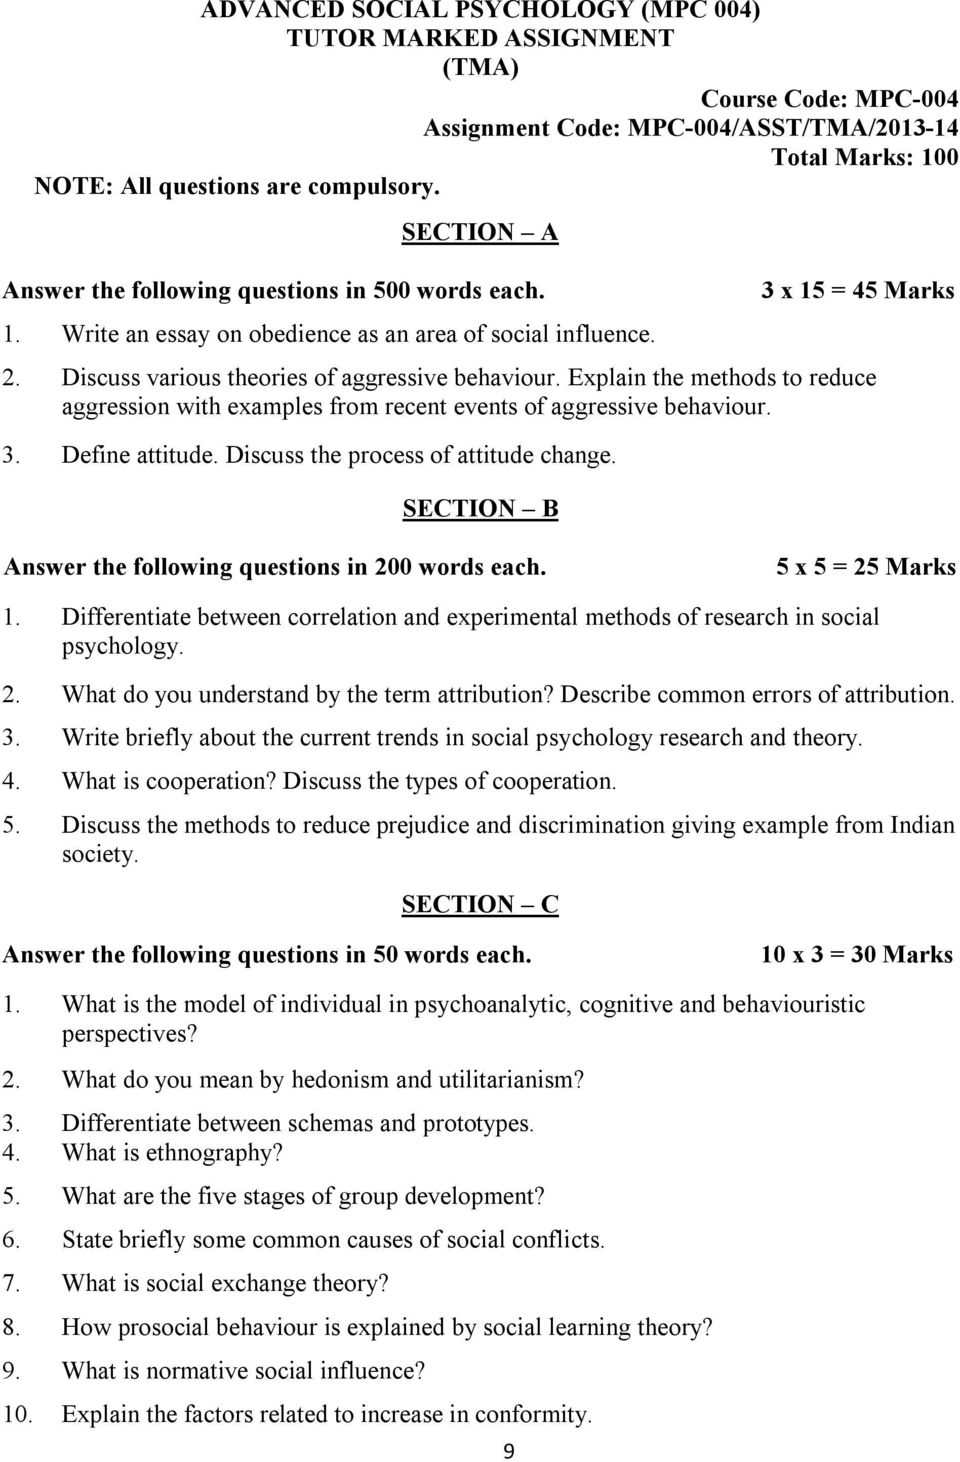 essay questions on social psychology Social studies is the study of human beings as they relate to each other and their environments if you enjoy exploring people, their cultures and behavior, you should enjoy social studies there are many disciplines that fit under the umbrella of the social sciences, so you can narrow the field to.